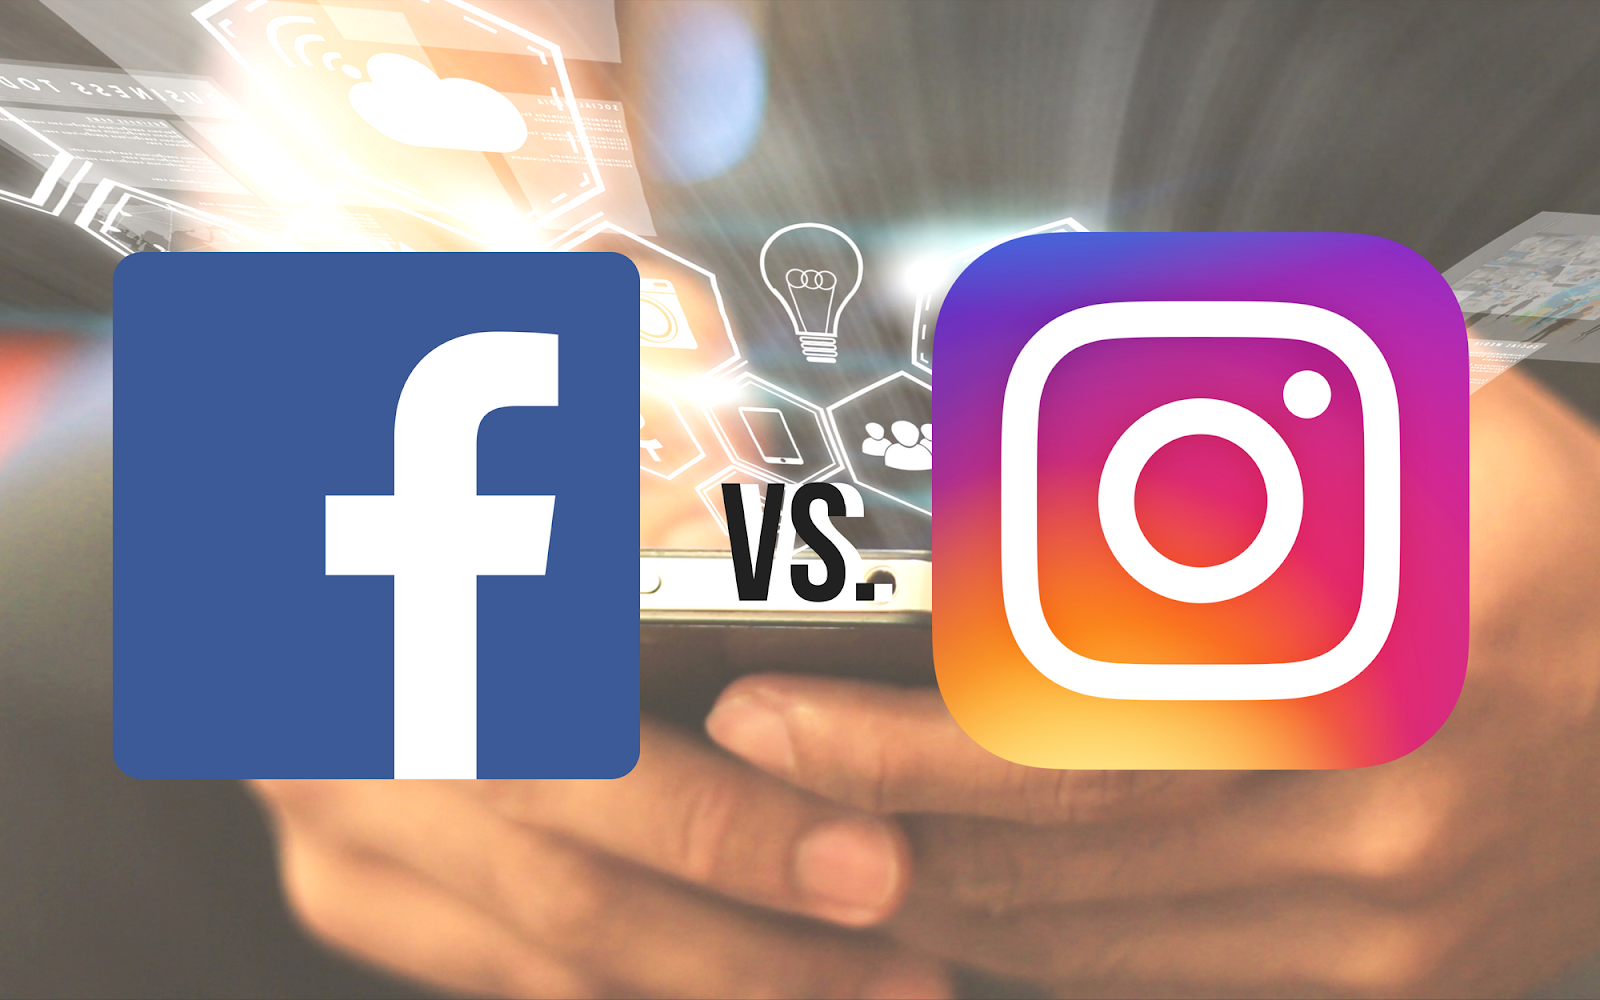 An image of the Facebook icon and the Instagram icon superimposed over someone holding a cell phone.